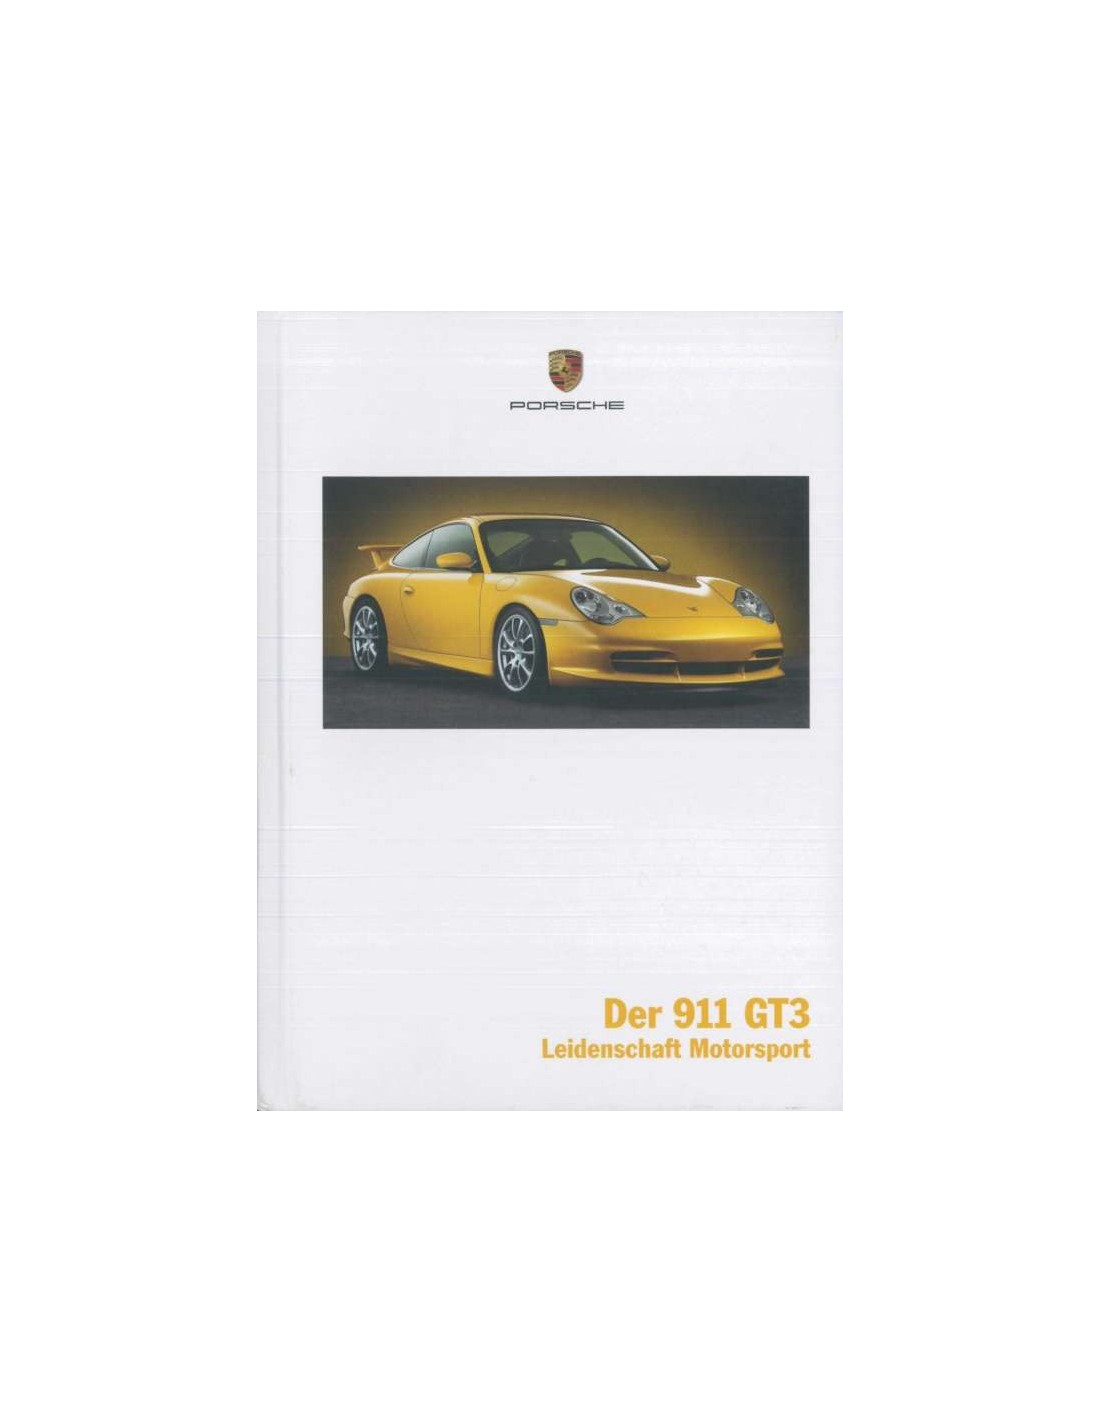 2003 porsche 911 gt3 hardcover brochure duits. Black Bedroom Furniture Sets. Home Design Ideas